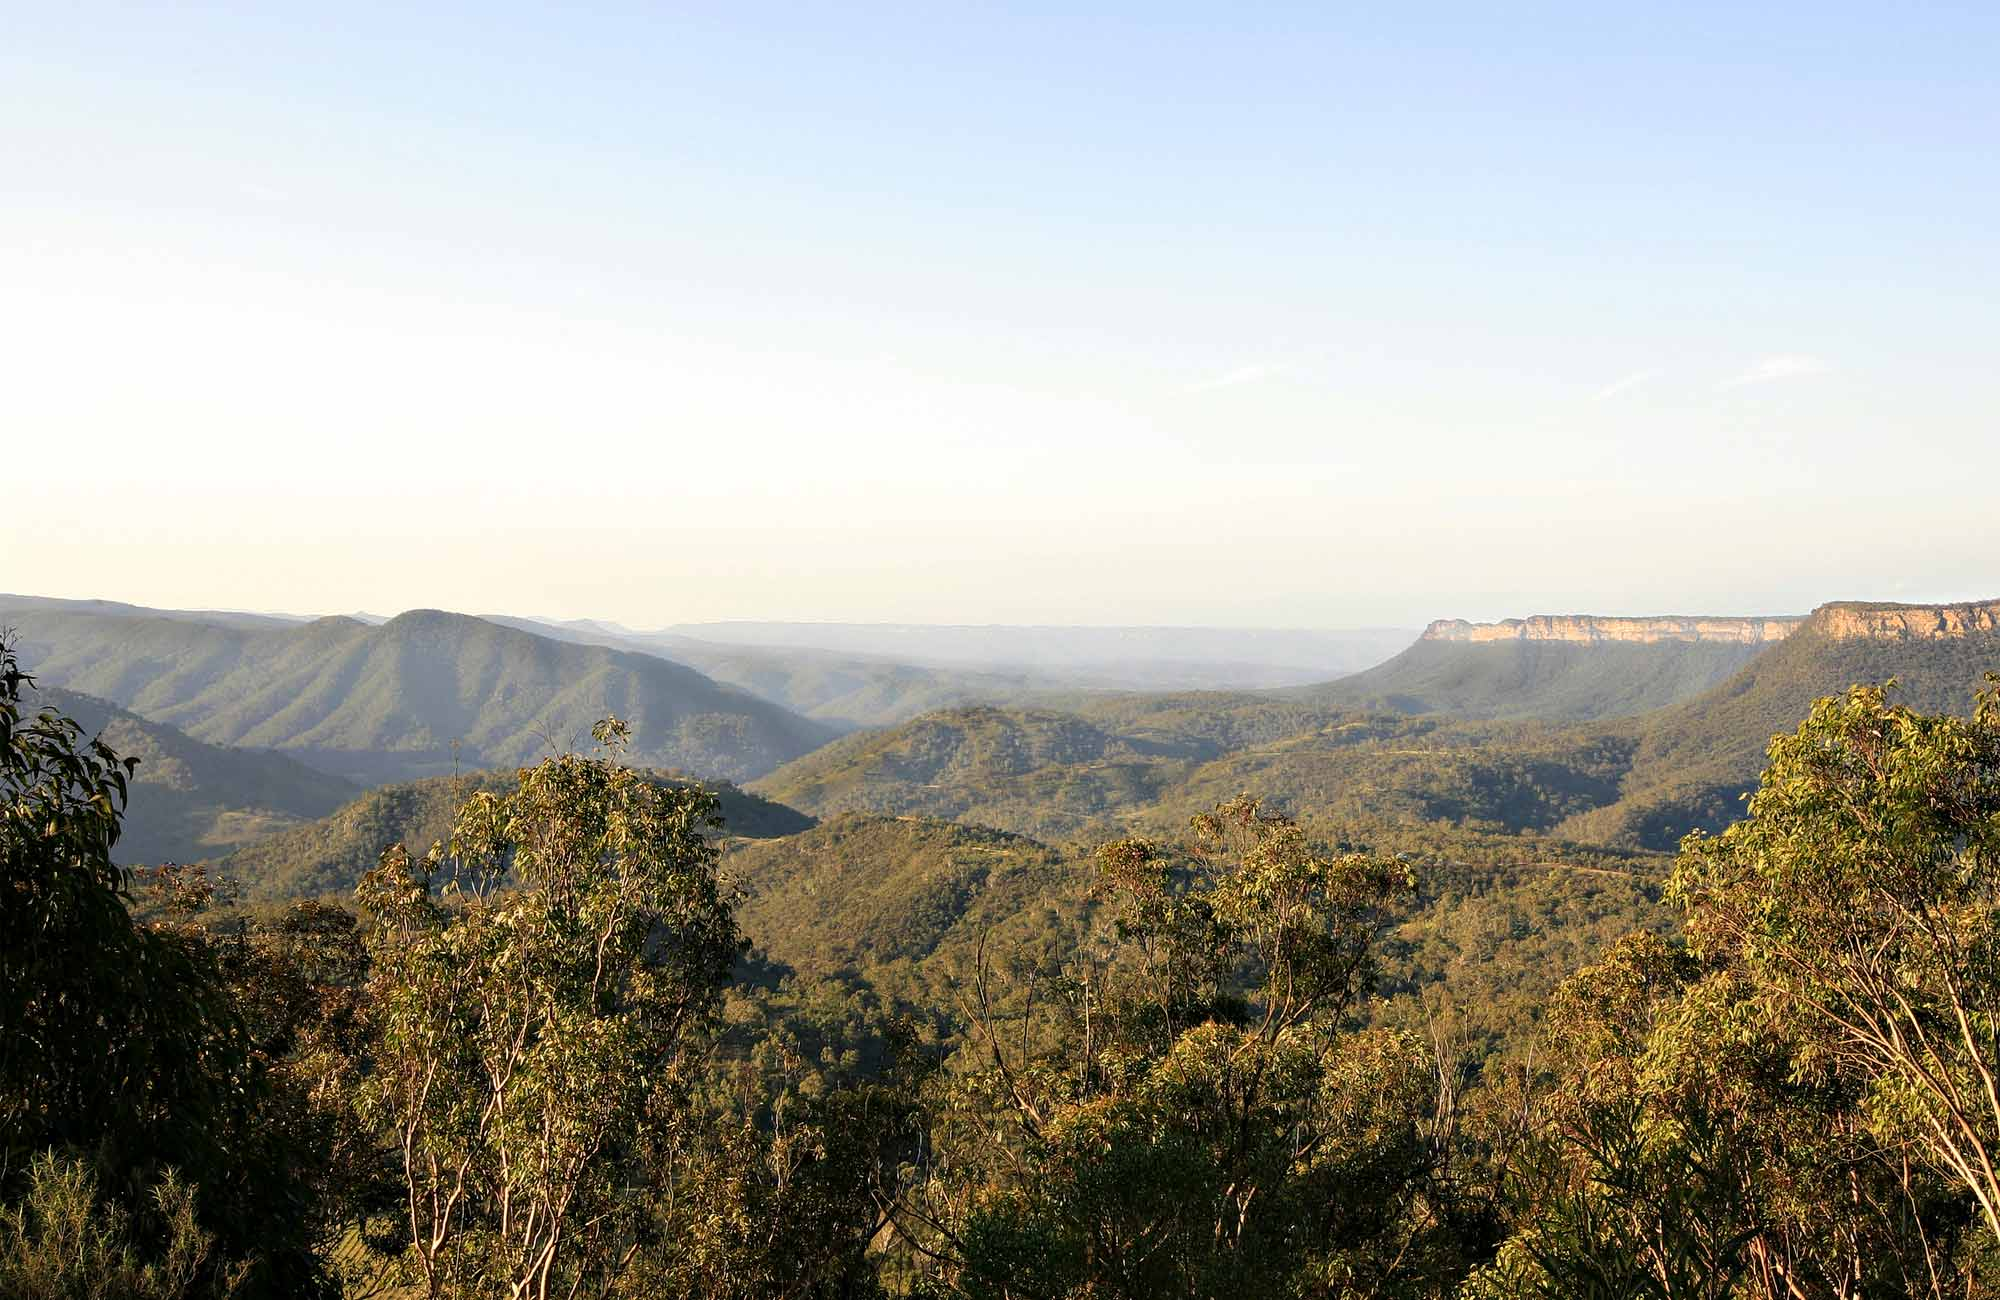 Wollondolly lookout, Nattai National Park. Photo: Rosie Nicolai